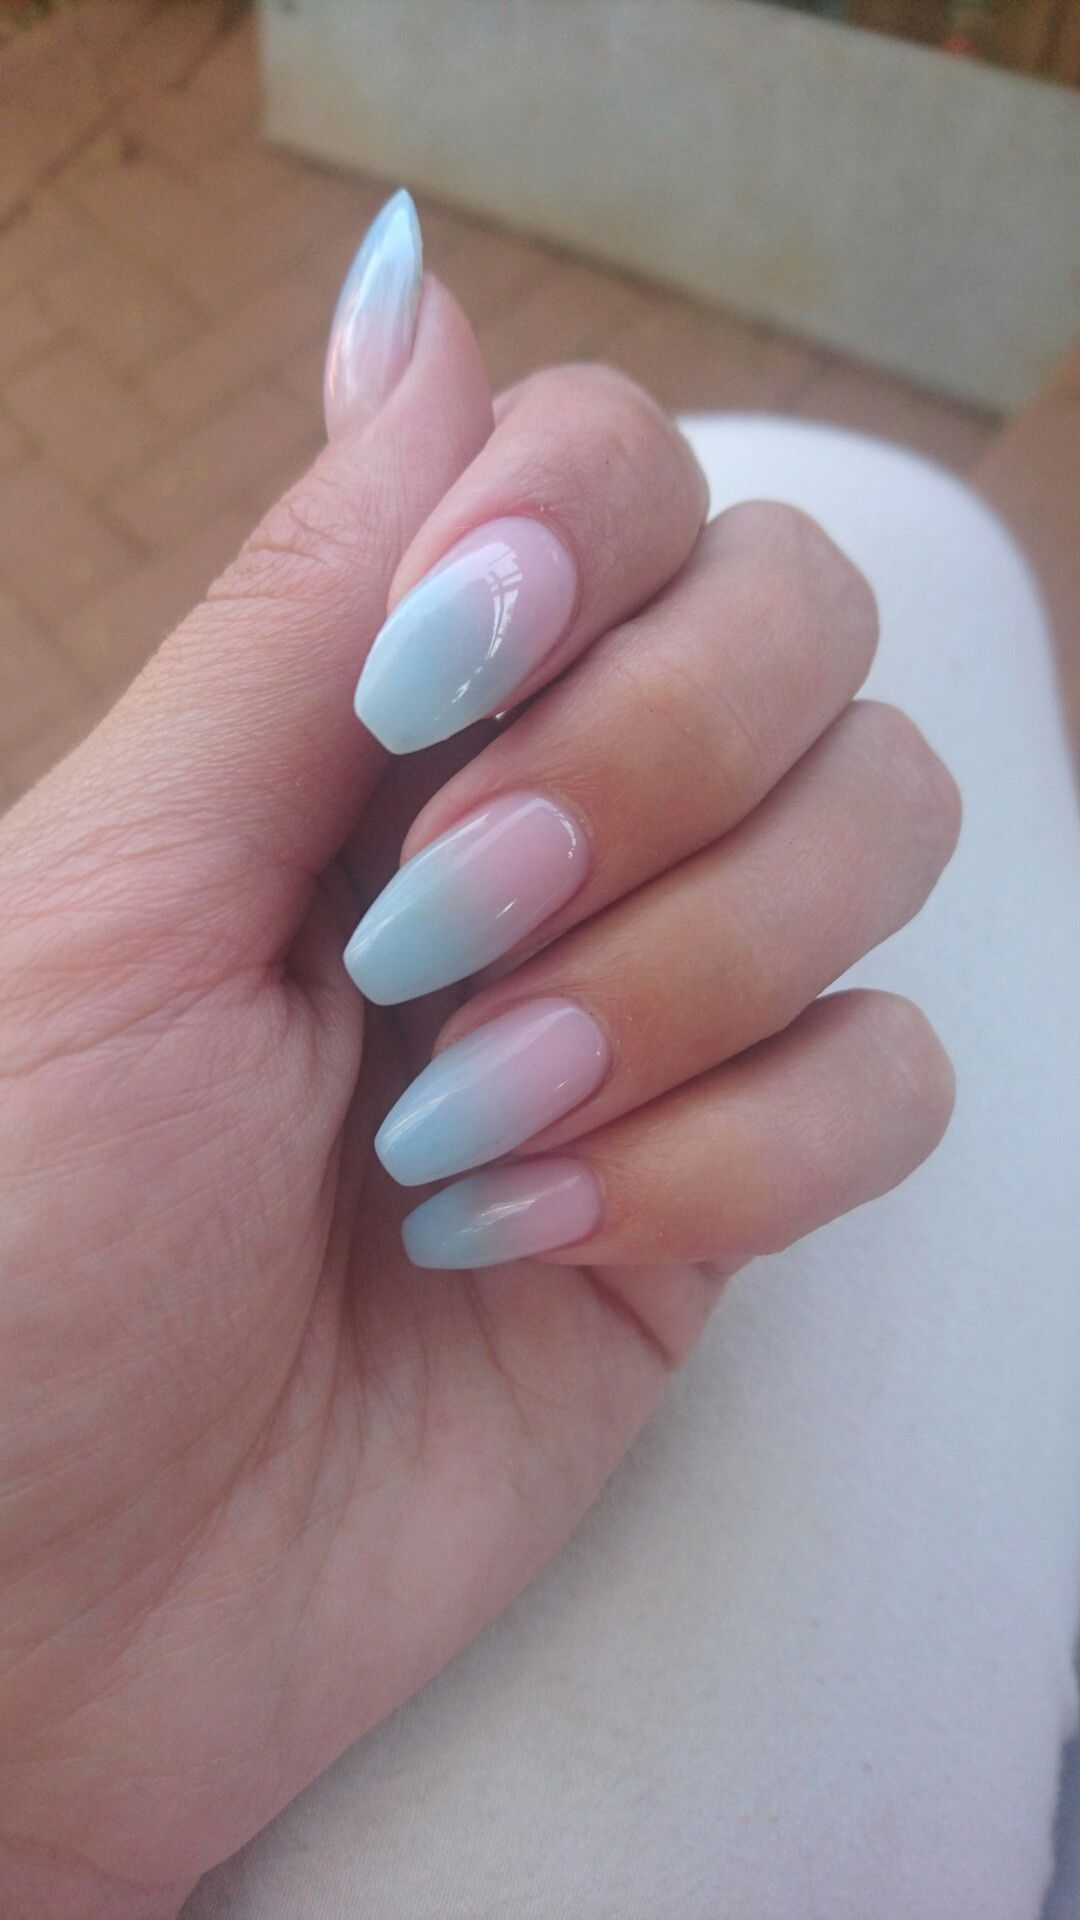 Ombre Nail Trend: Pastel Pink And Blue Ombre Coffin Shaped Nails